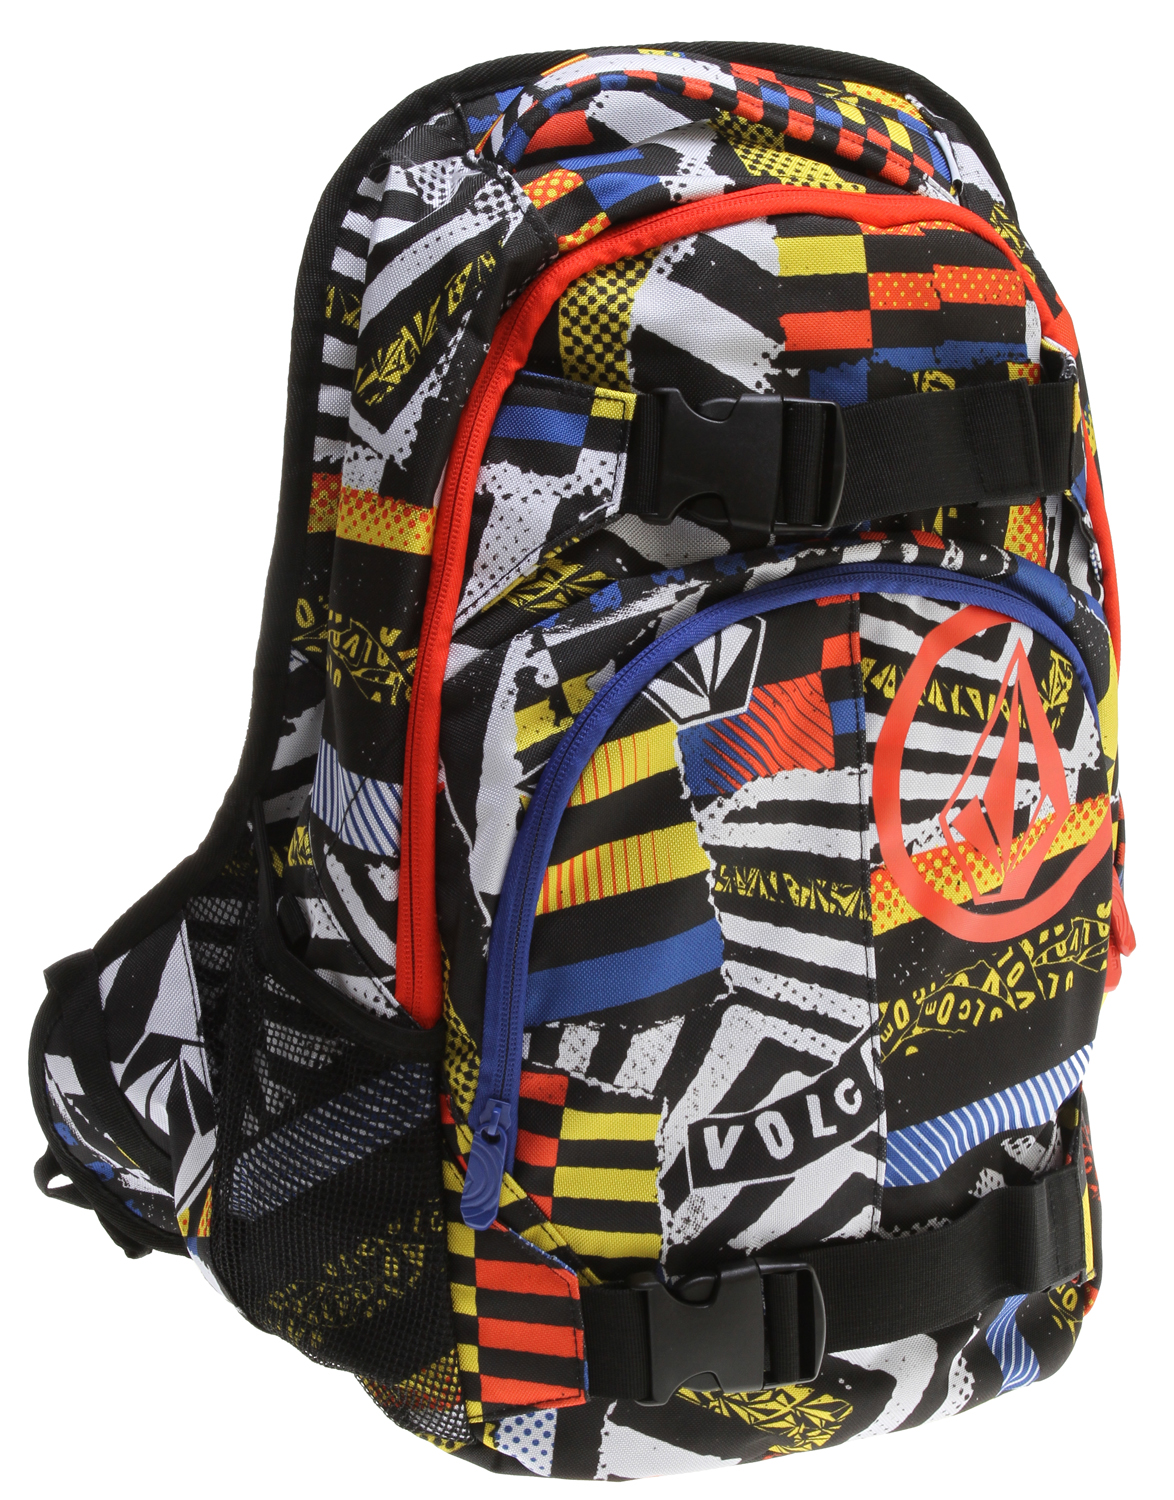 "Surf Key Features of the Volcom Equilibrium Backpack: Volume: 31L Dimensions: 19.75 x 13 x 7.75"" Weight: 1.5lb Two compartment backpack with 'Circle Stone' and 'Volcom' prints As part of Volcom's V.Co-logical effort, a portion of the proceeds from the sale of this style will be donated to charities affiliated with 1% for the Planet - $45.00"